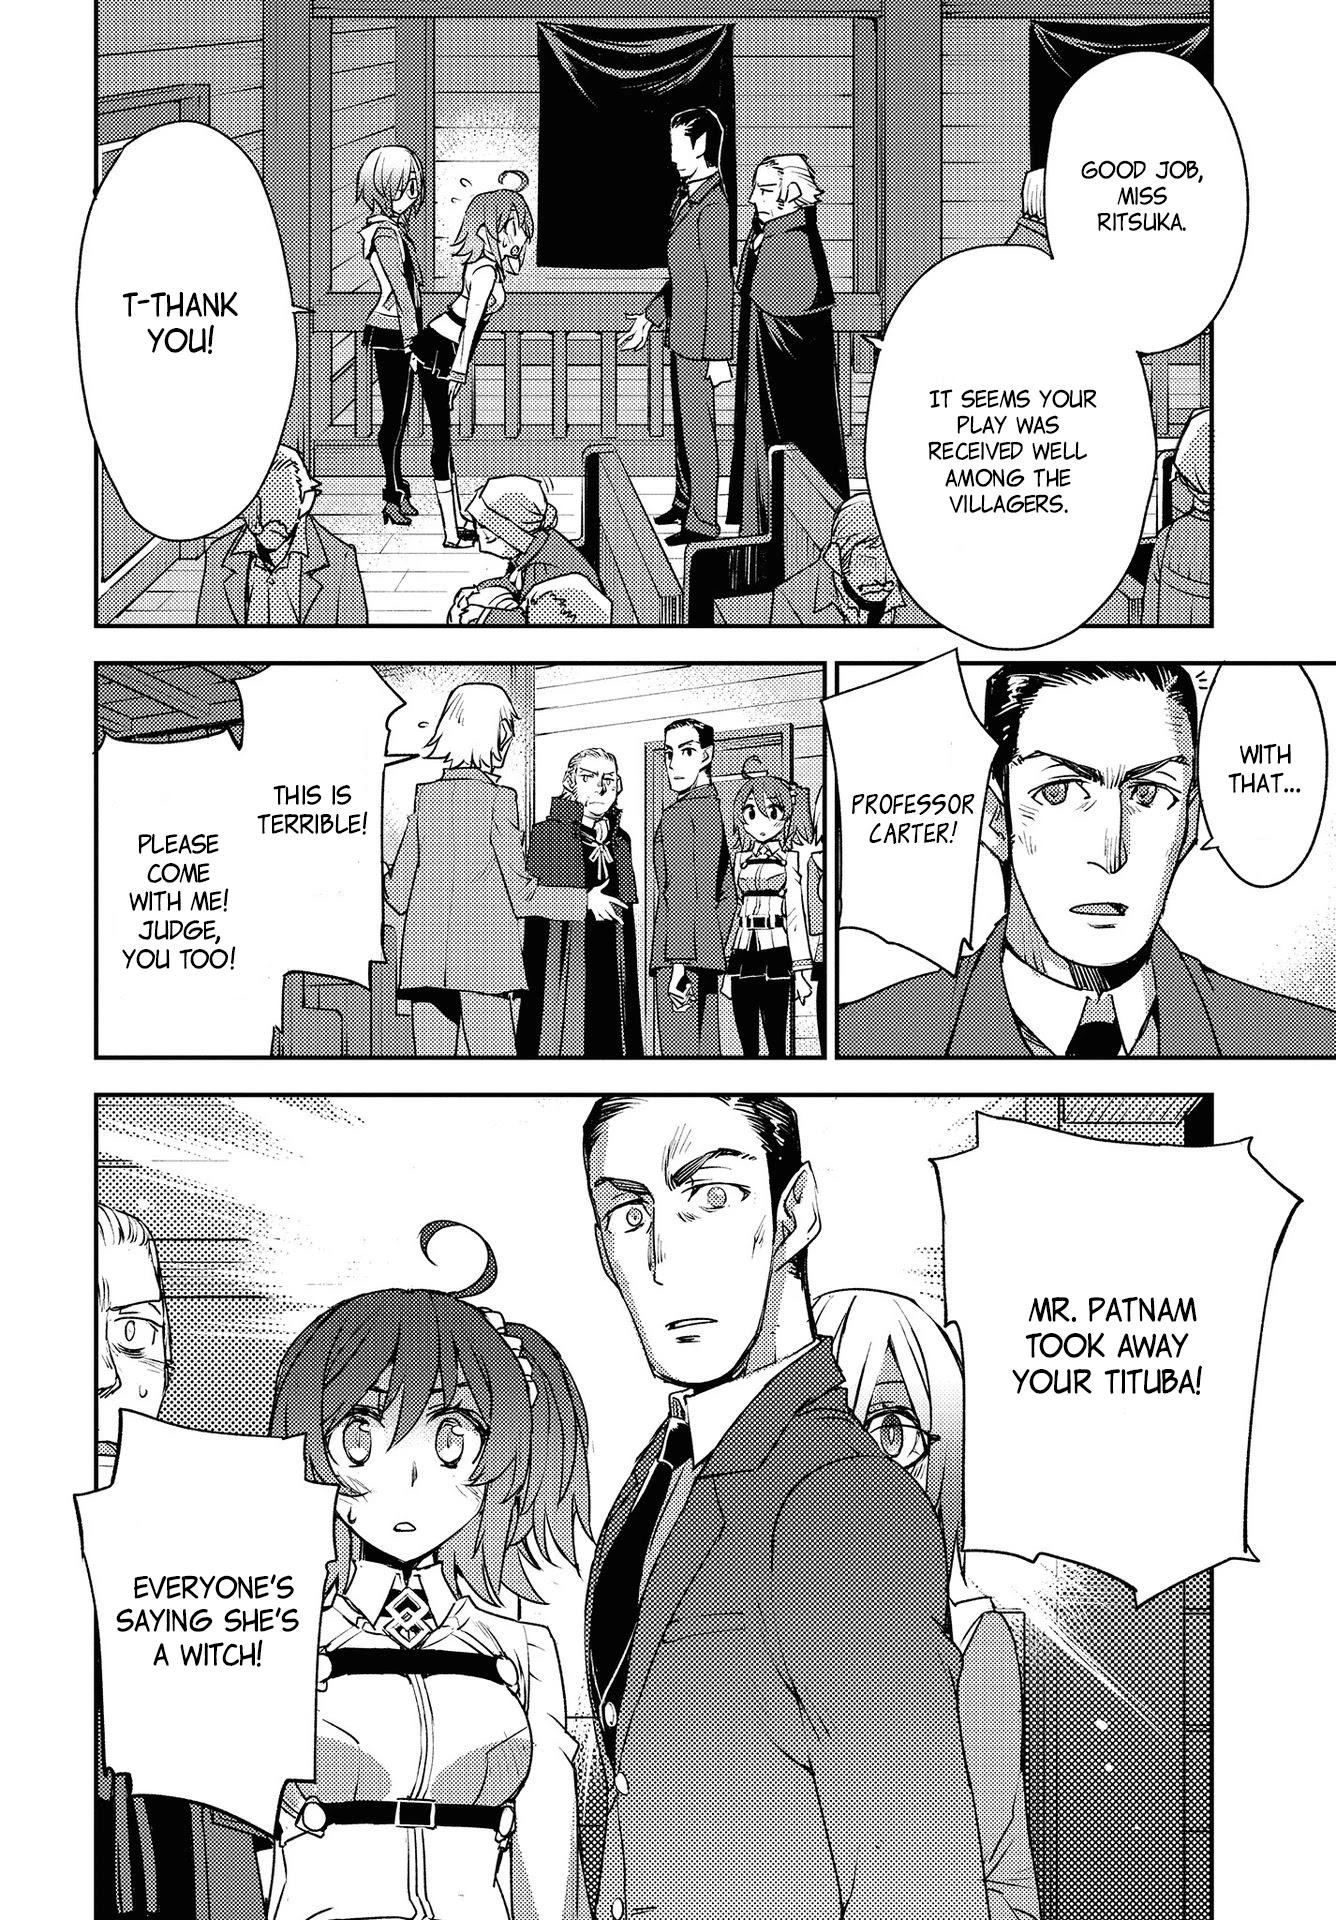 Fate/grand Order: Epic Of Remnant - Subspecies Singularity Iv: Taboo Advent Salem: Salem Of Heresy Chapter 8: Unknot: Before Dawn 7 page 6 - Mangakakalots.com